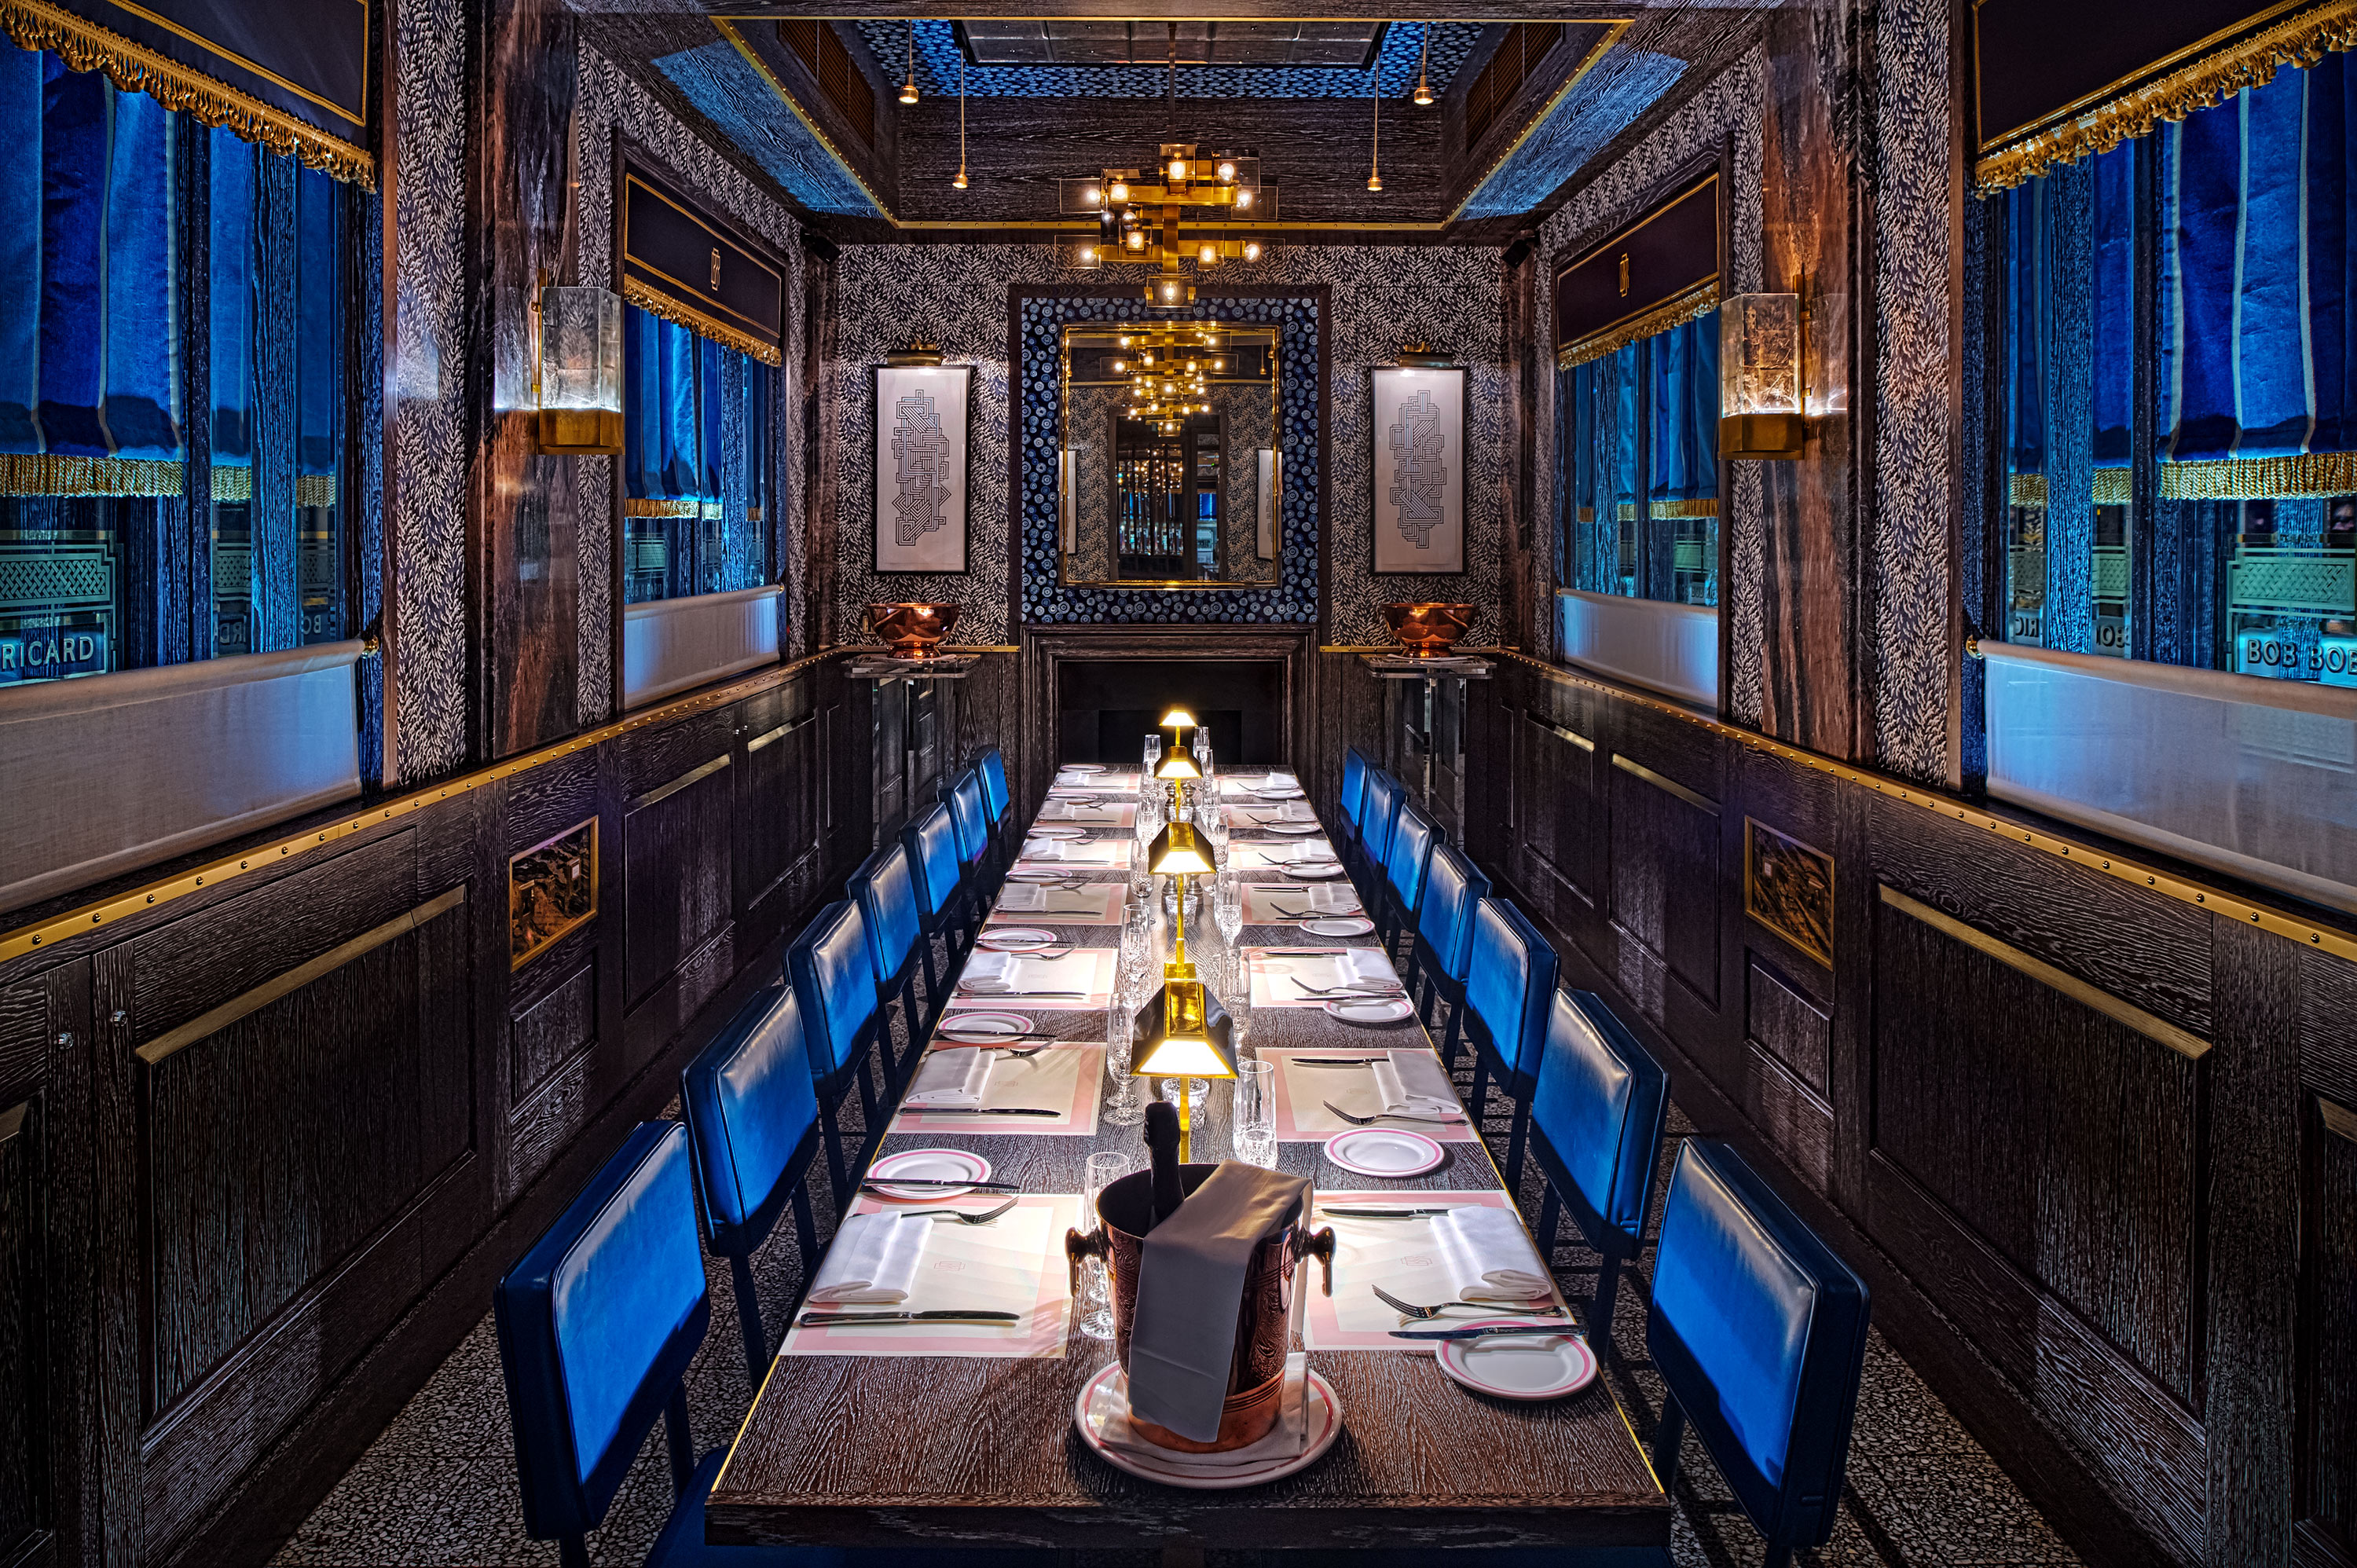 private dining room private dining room The World's Most Remarkable Private Dining Rooms 1 The Worlds Most Remarkable Private Dining Rooms